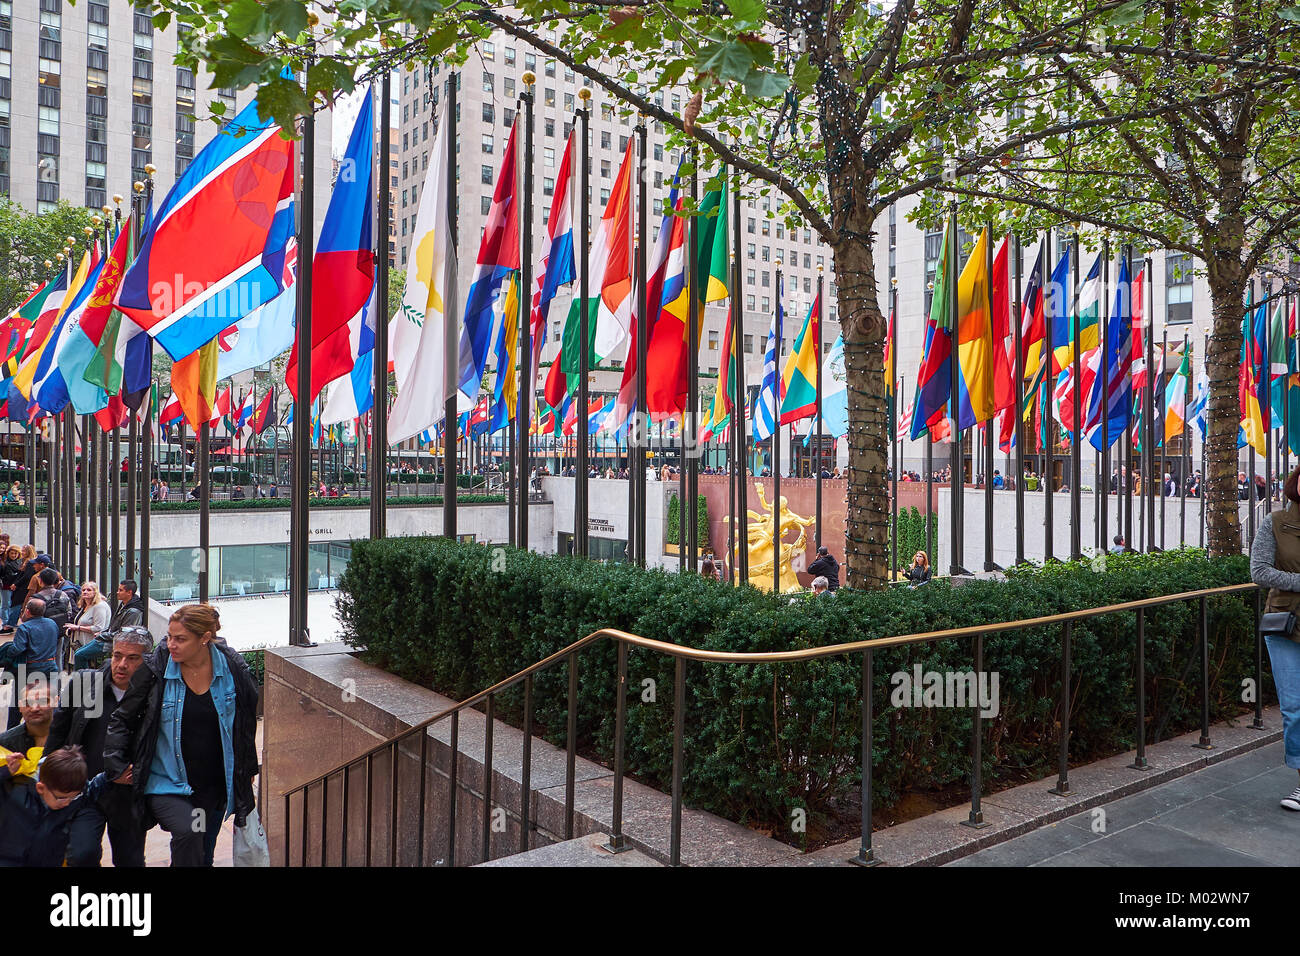 NEW YORK CITY - SEPTEMBER 29, 2016: People walking by the Rockefeller Center Plaza where the famous ice rink is - Stock Image